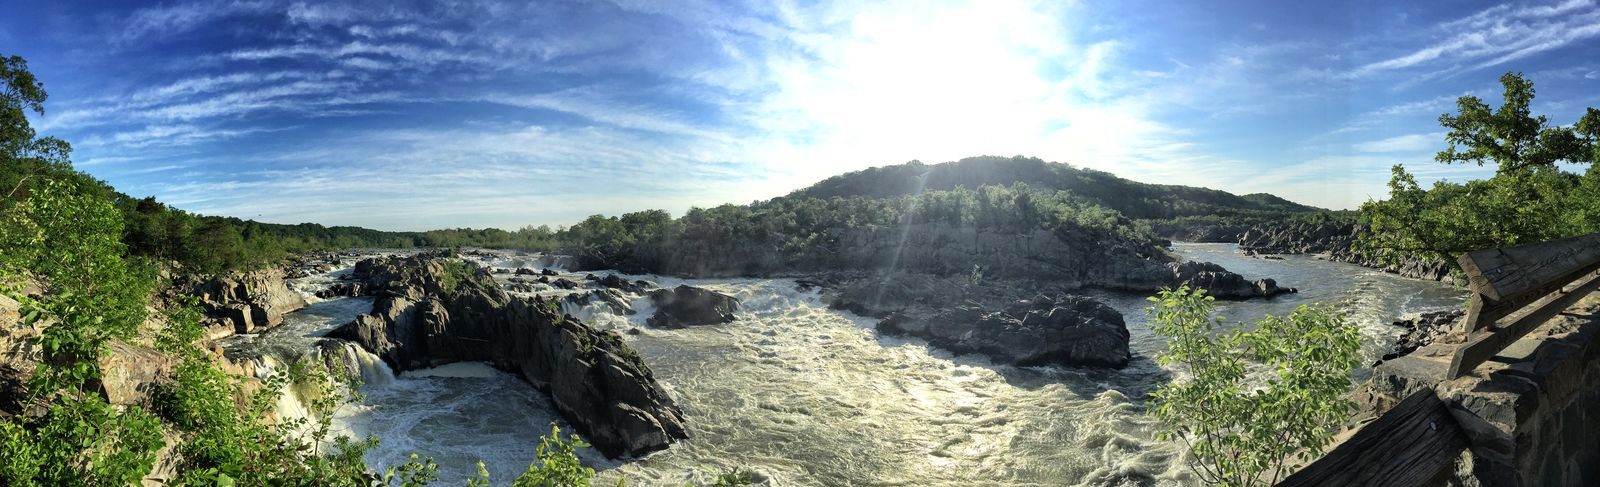 Beauty In Nature Cloud - Sky Day Geology Great Falls Lens Flare National Park Nature Non-urban Scene Panoramic Physical Geography Remote River Rock - Object Scenics Sky Sun Sunbeam Sunlight Sunny Tourism Tourist Tranquil Scene Tranquility Travel Destinations